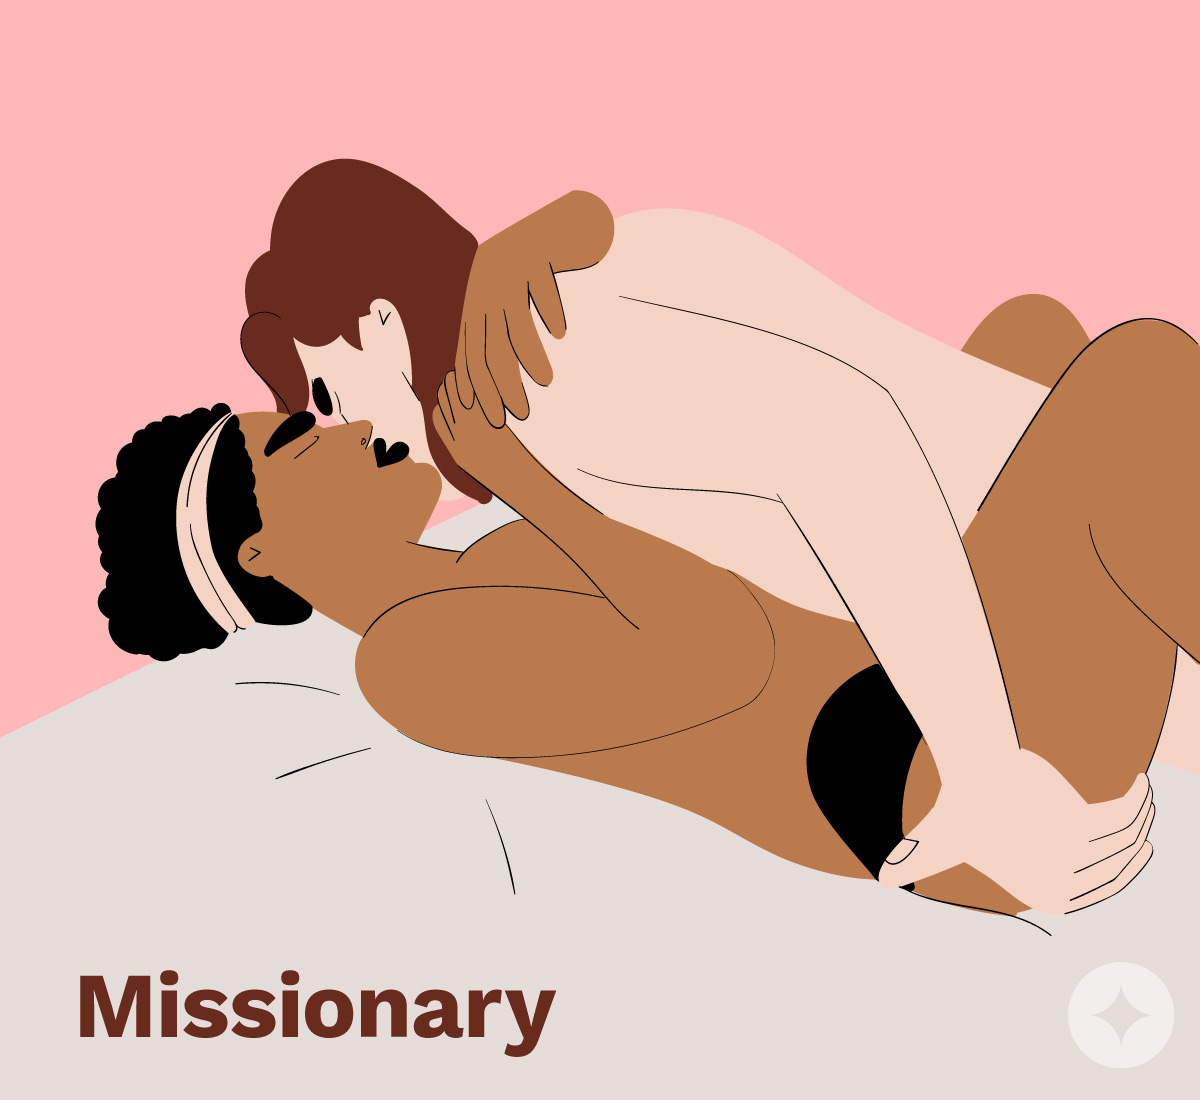 Missionary is one of the best positions for make-up sex